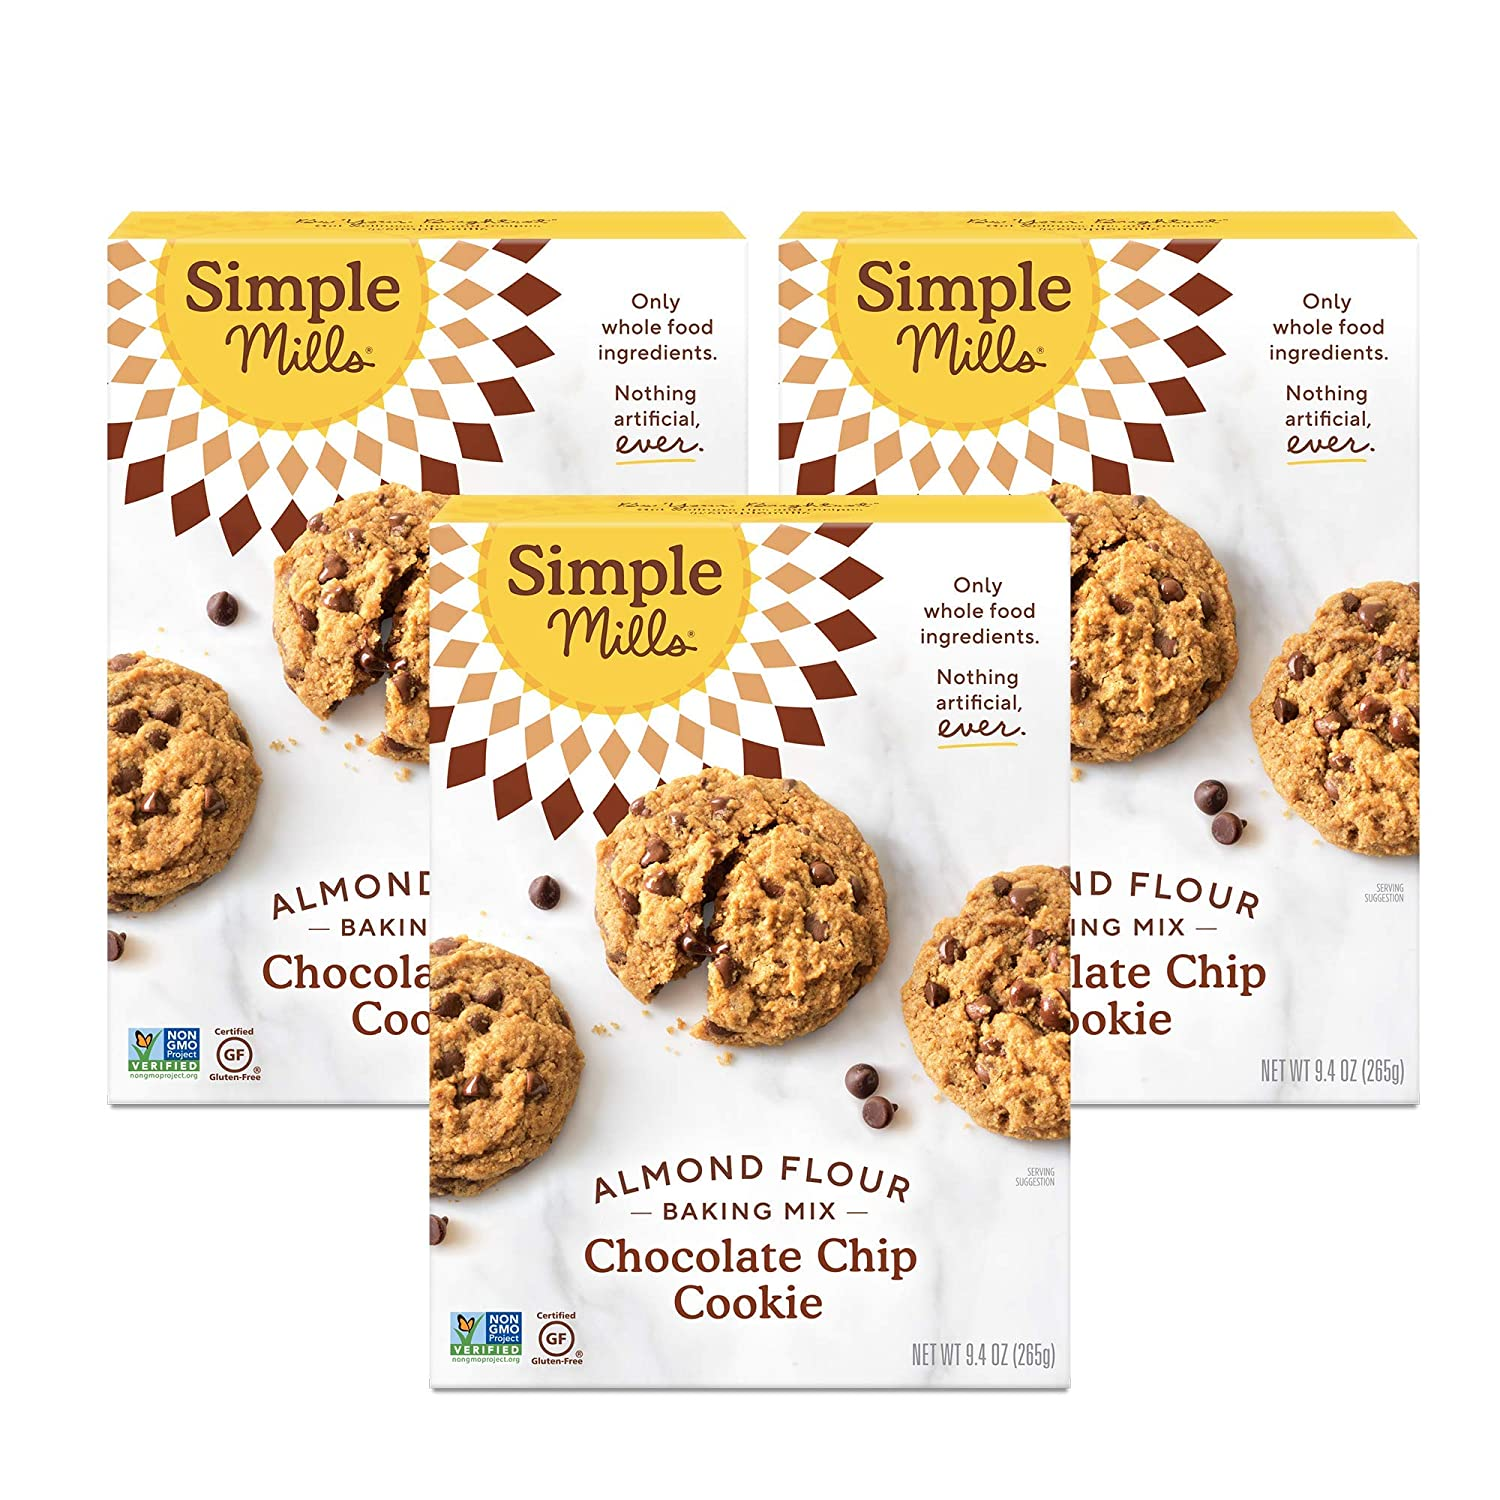 Simple Mills Almond Flour Baking Mix, Gluten Free Chocolate Chip Cookie Dough Mix, Made with whole foods, 3 Count (Packaging May Vary)